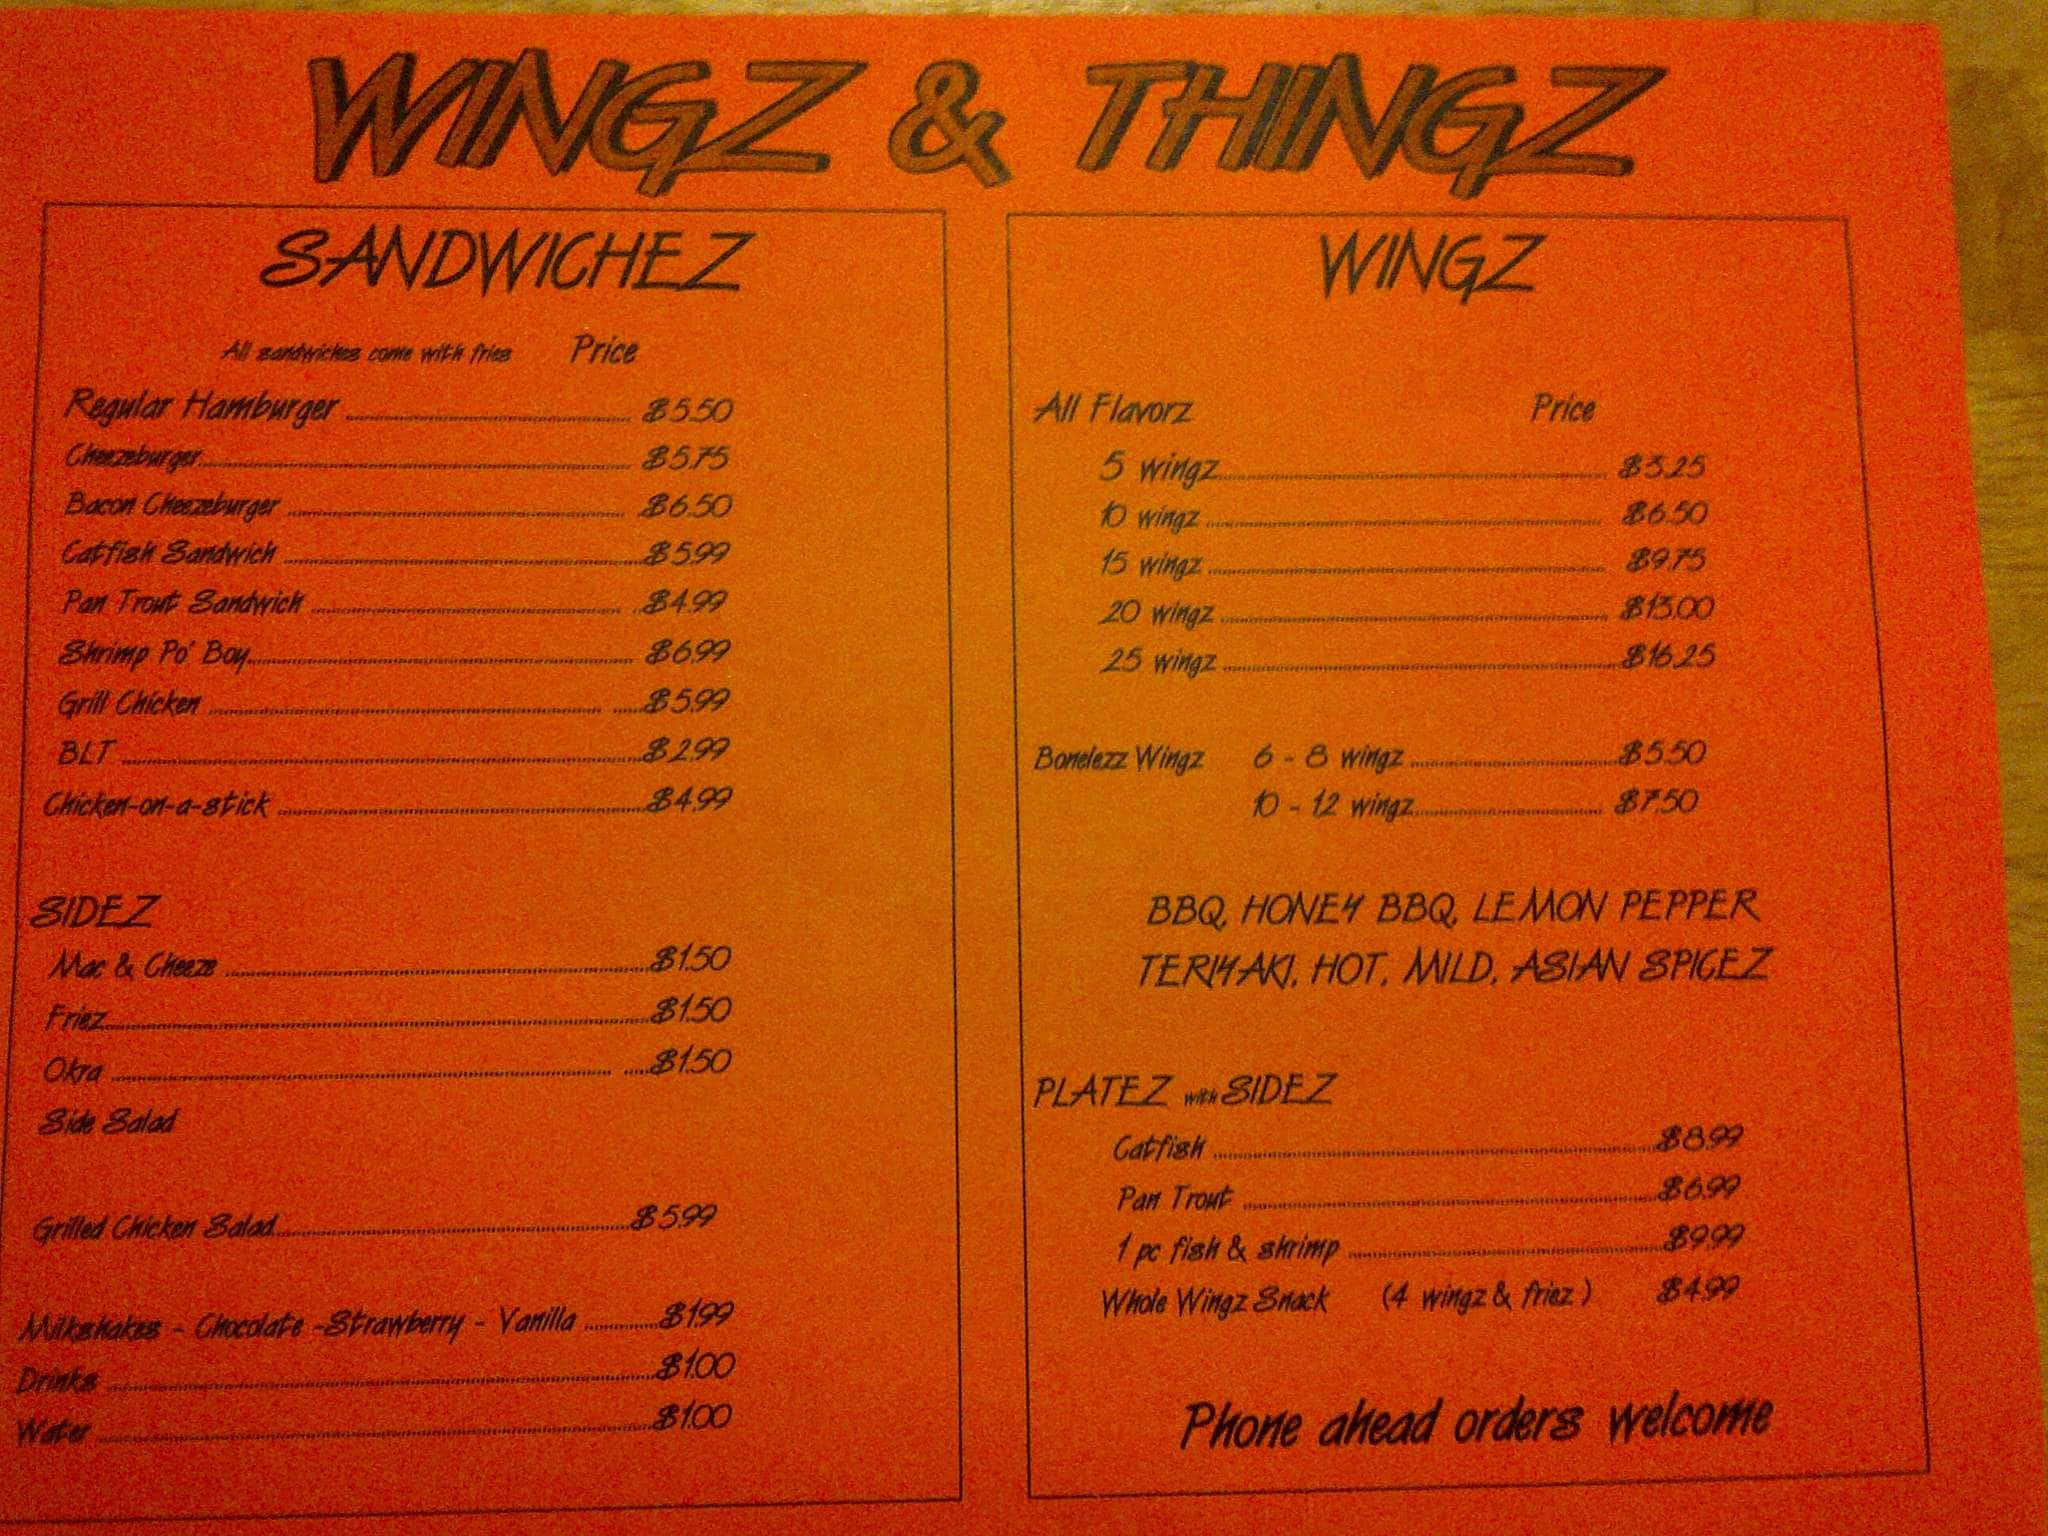 Hazlehurst (MS) United States  City pictures : ... , Menu for Wingz & Thingz, Hazlehurst, Hazlehurst Urbanspoon/Zomato